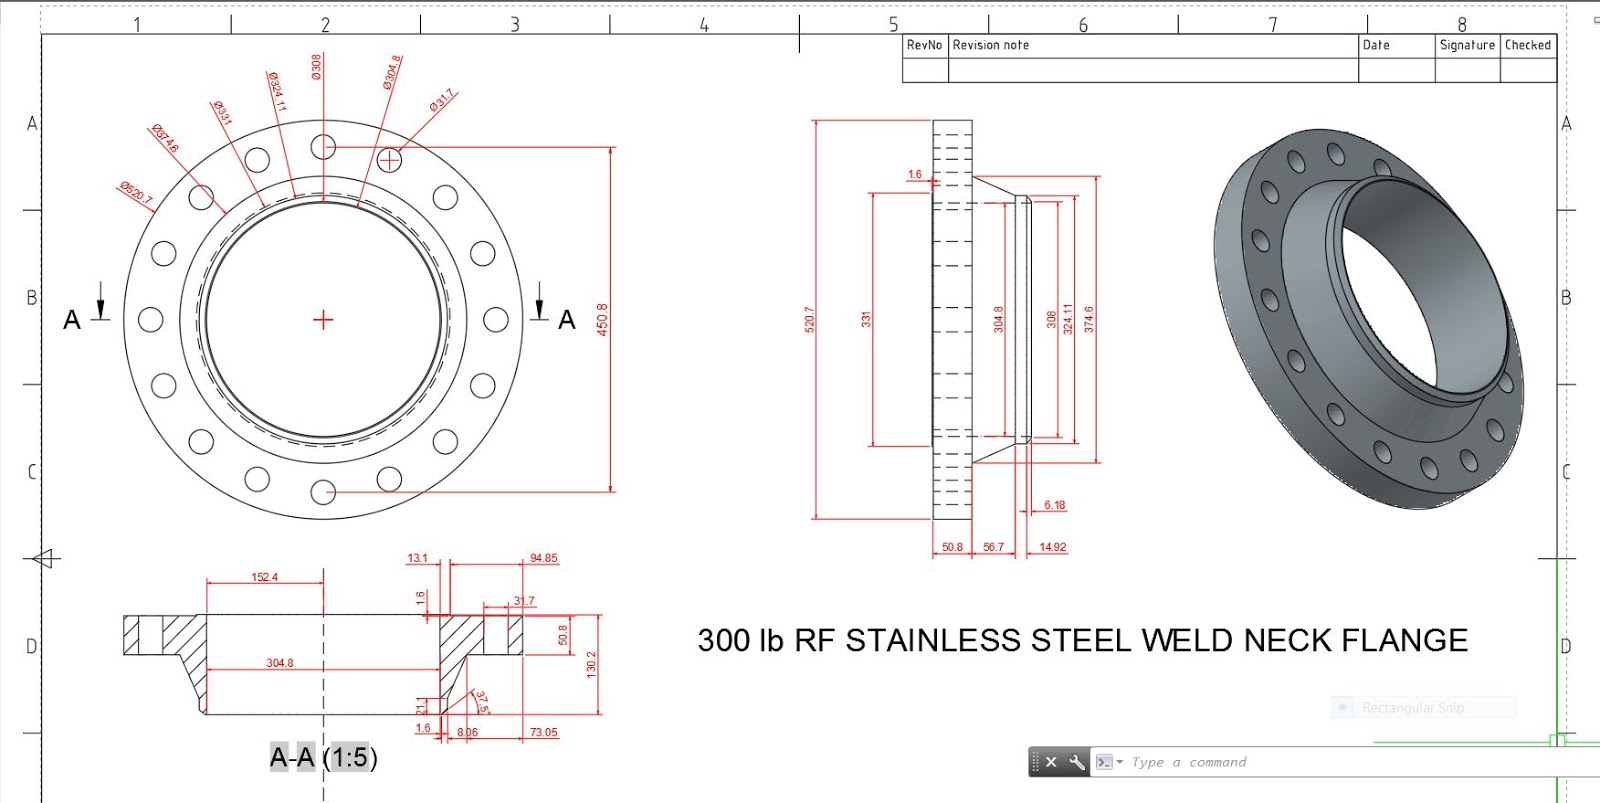 AUTOCAD NETWORK: 300 lb RF Stainless Steel Weld Neck Flange